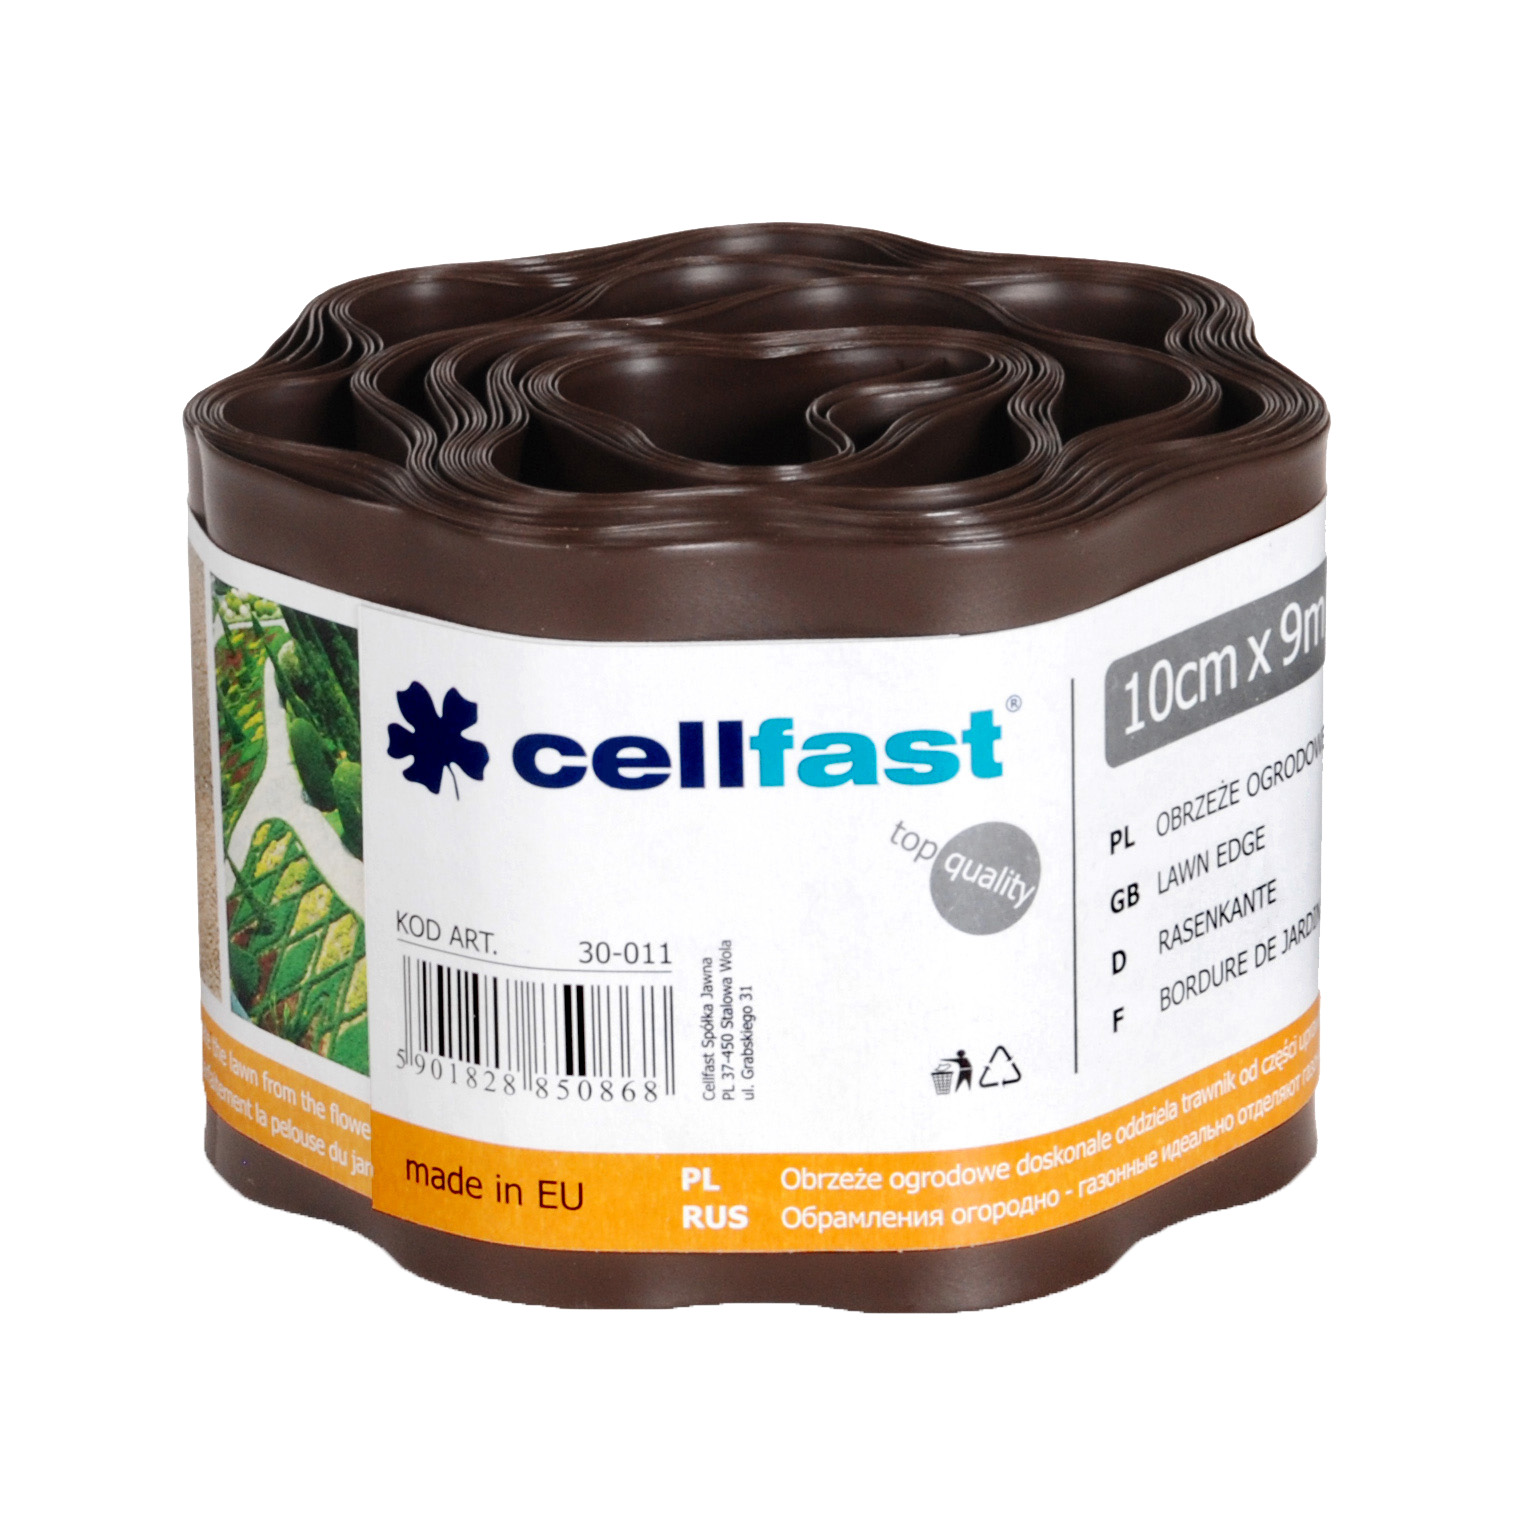 Cellfast Garden edging, brown 10cm x 9m (30-011)